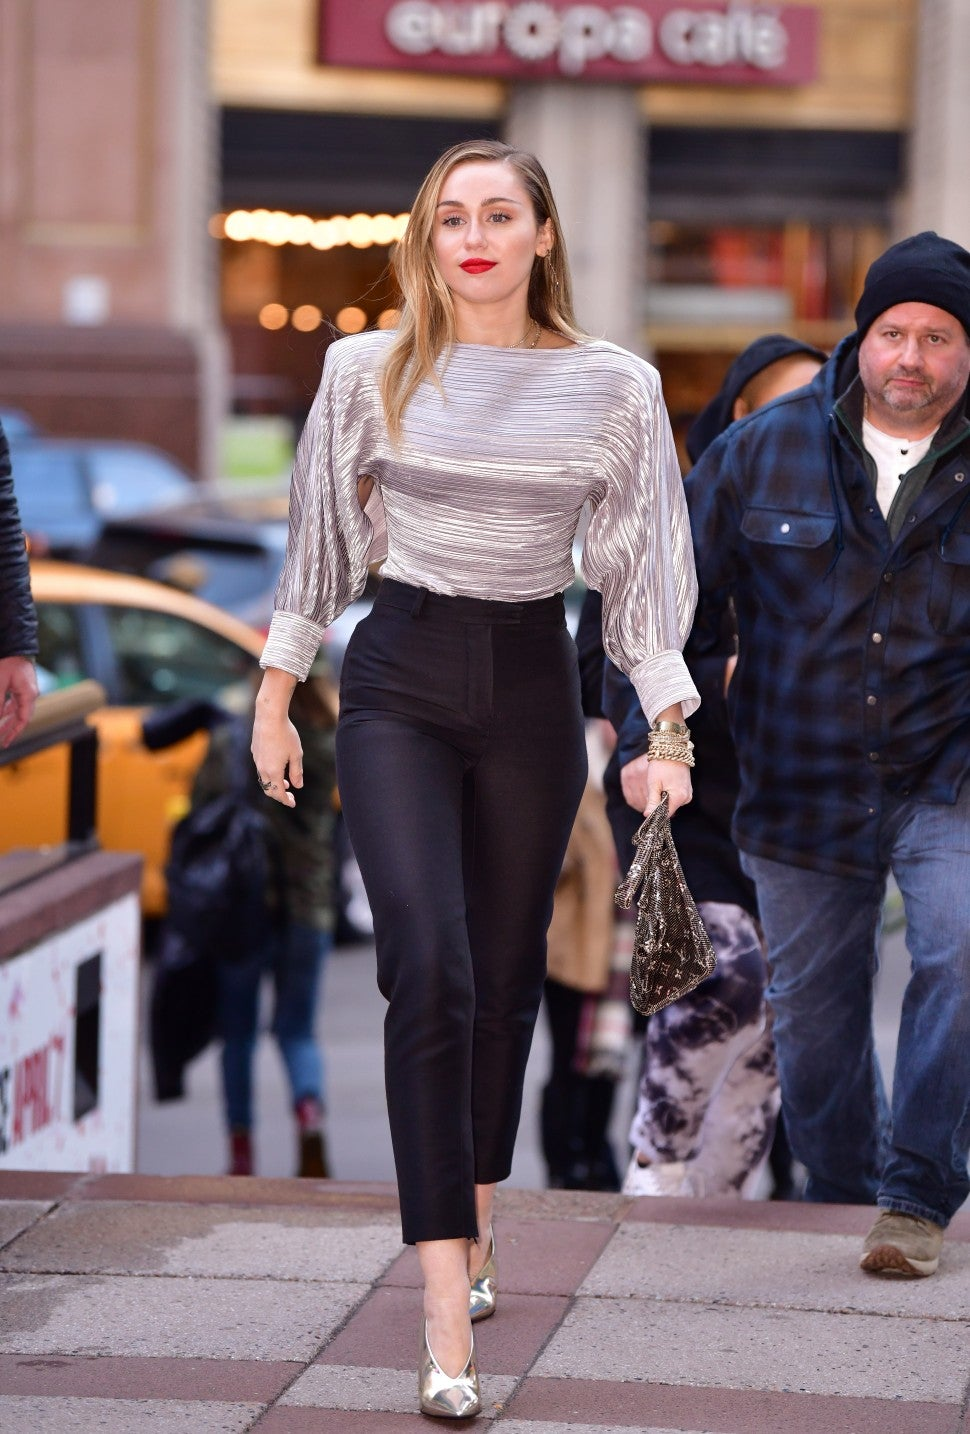 Miley Cyrus Outfit Is The Cool Girl Version Of A Holiday Party Look Entertainment Tonight